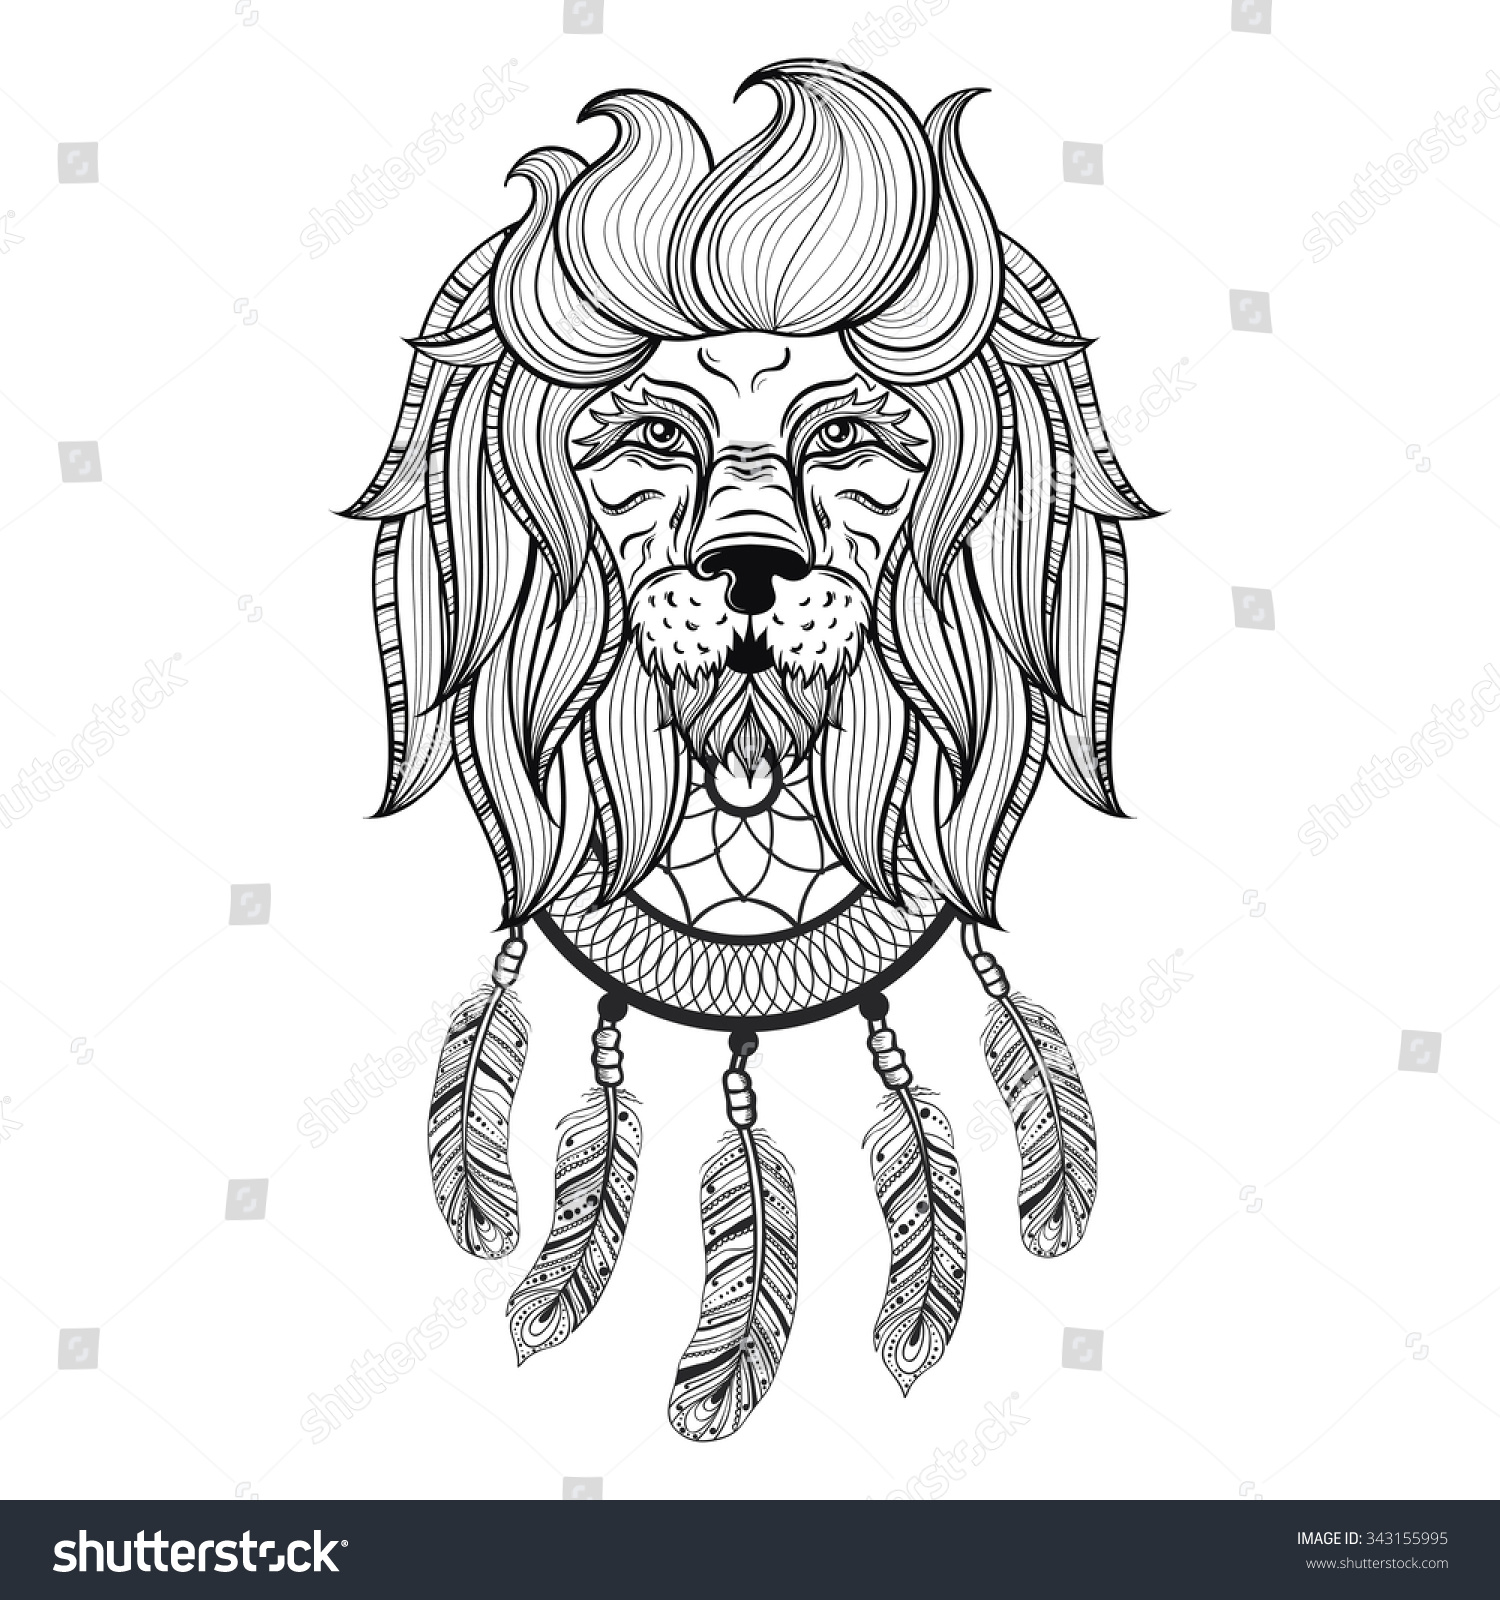 vector ornamental lion with dreamcatcher ethnic patterned head hand drawn bohemian tattoo. Black Bedroom Furniture Sets. Home Design Ideas